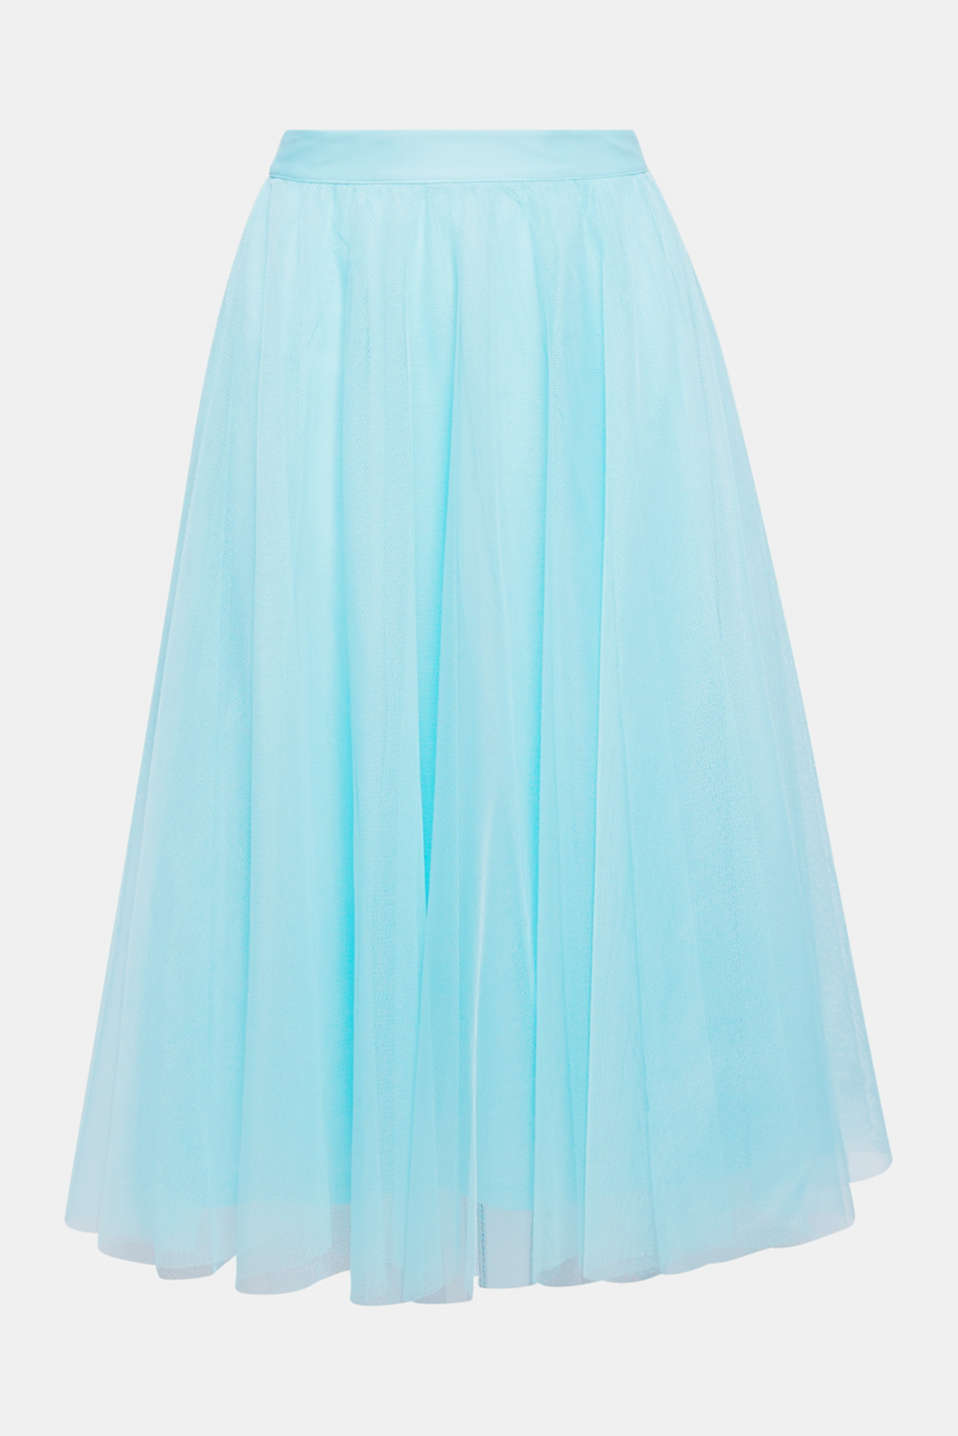 Swing into spring: flared tulle skirt in a stylish midi length!